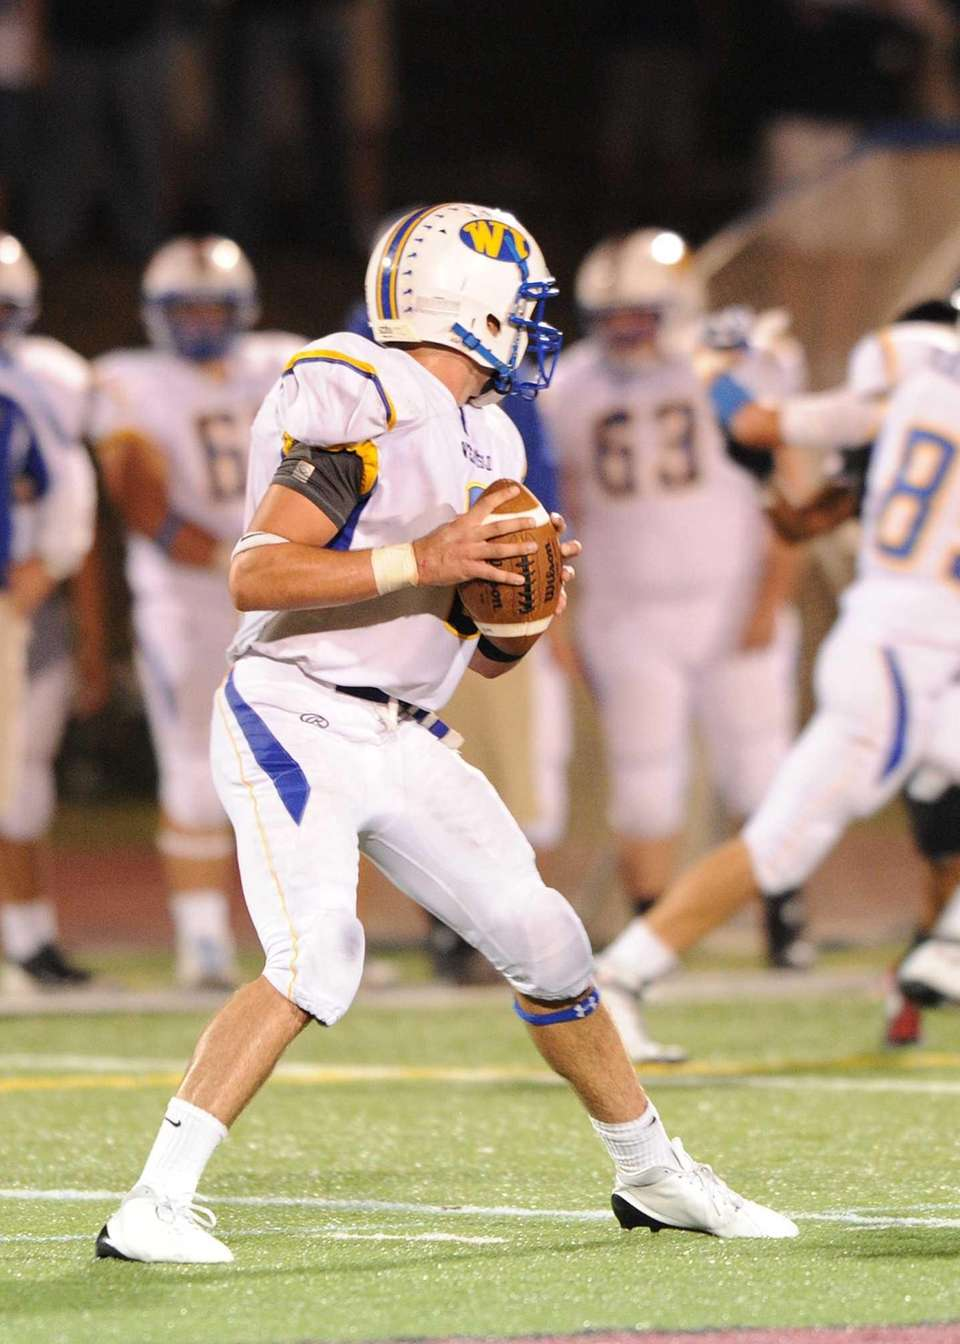 West Islip's Sam Ilario looks to pass downfield